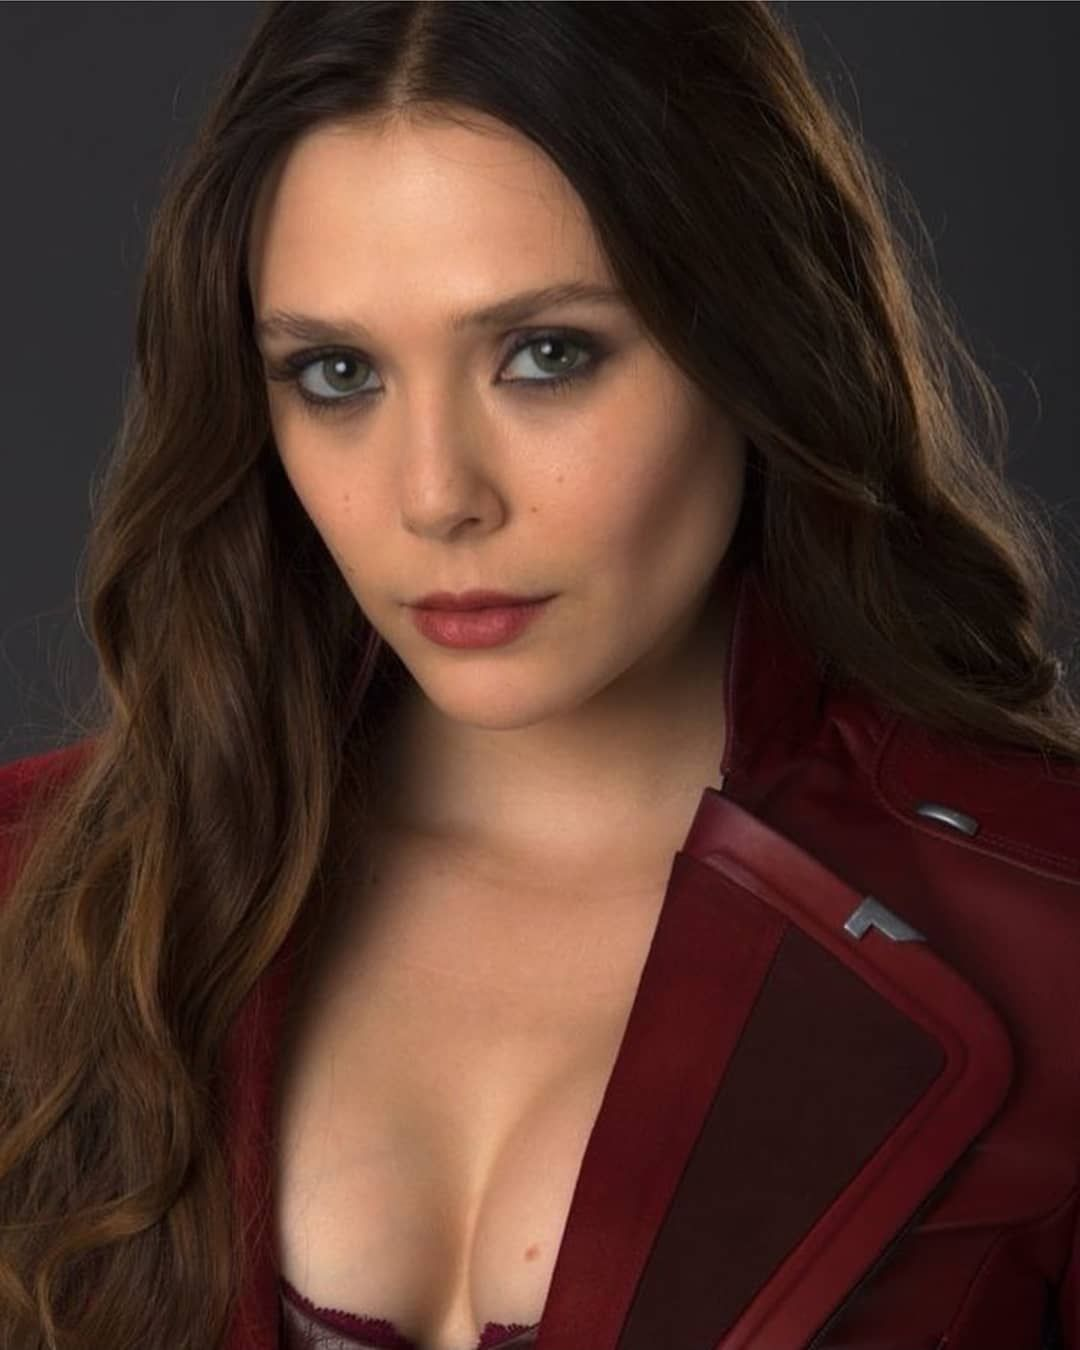 New Picture Of Scarlet Witch New Pic From Age Of Ultron Marvel Avengers Theaven Elizabeth Olsen Scarlet Witch Elizabeth Olsen Olsen Scarlet Witch